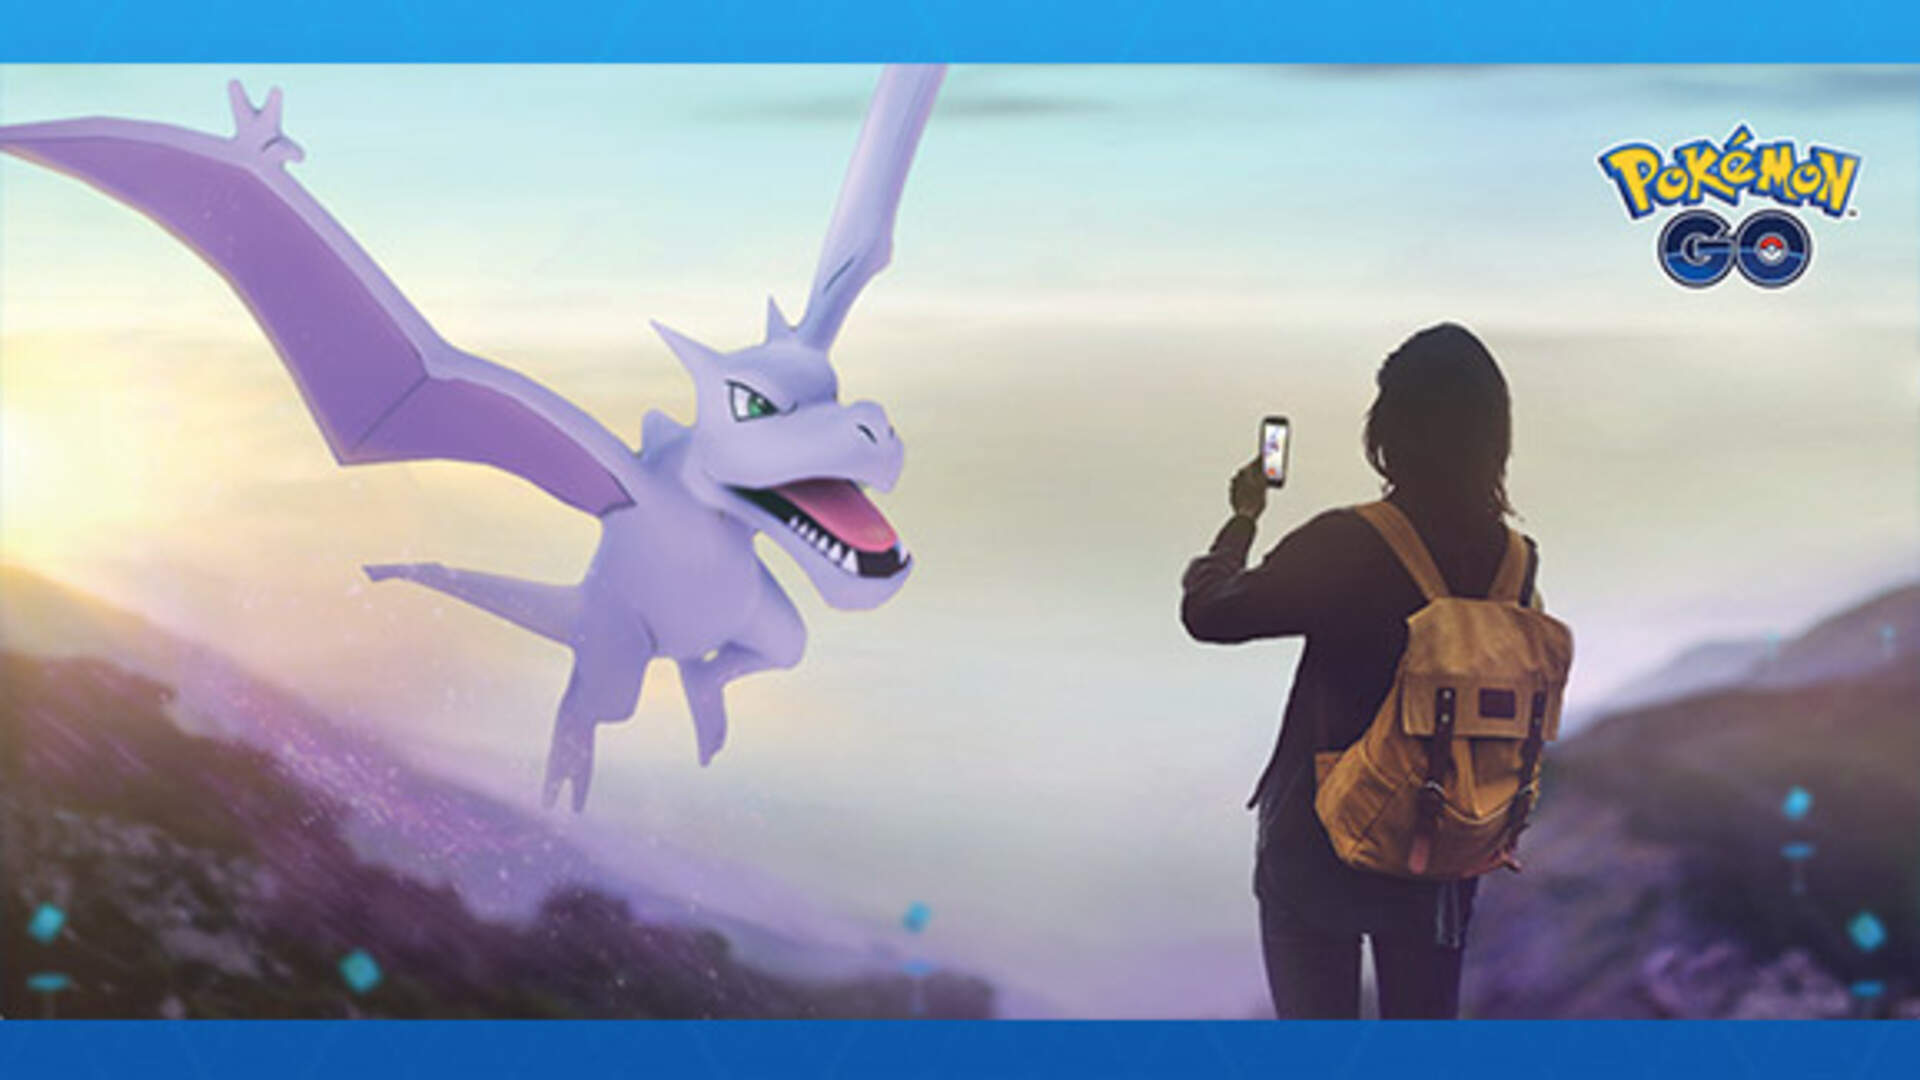 Pokemon GO Rock-Type Event Adventure Week - Event Features, All the Bonuses You Can Gain, How to Level Up Quickly